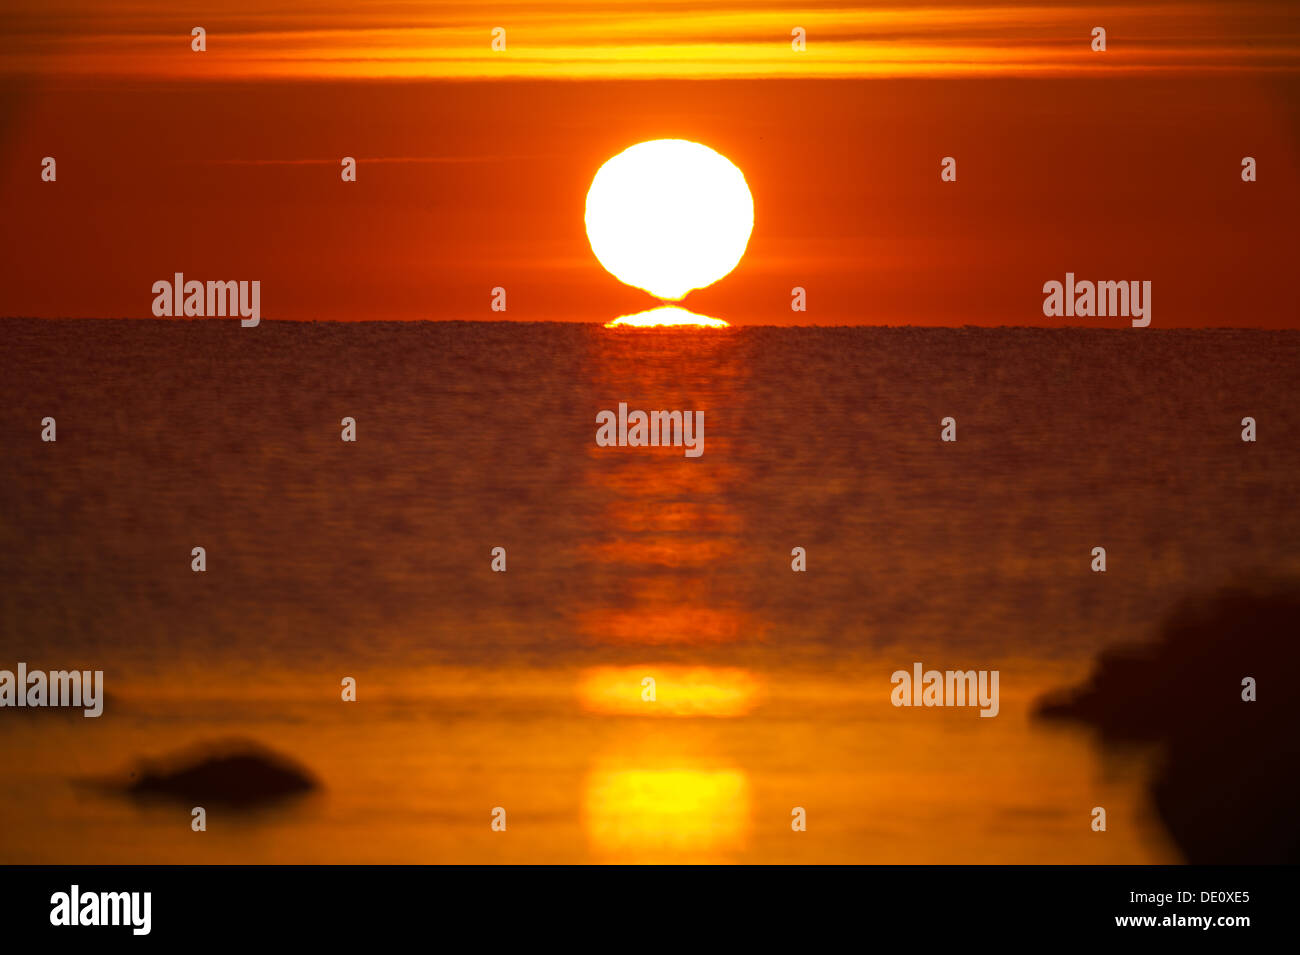 Morning sunrise with clear skies an sun reflecting in the sea. The sun is shaded like an omega - Stock Image